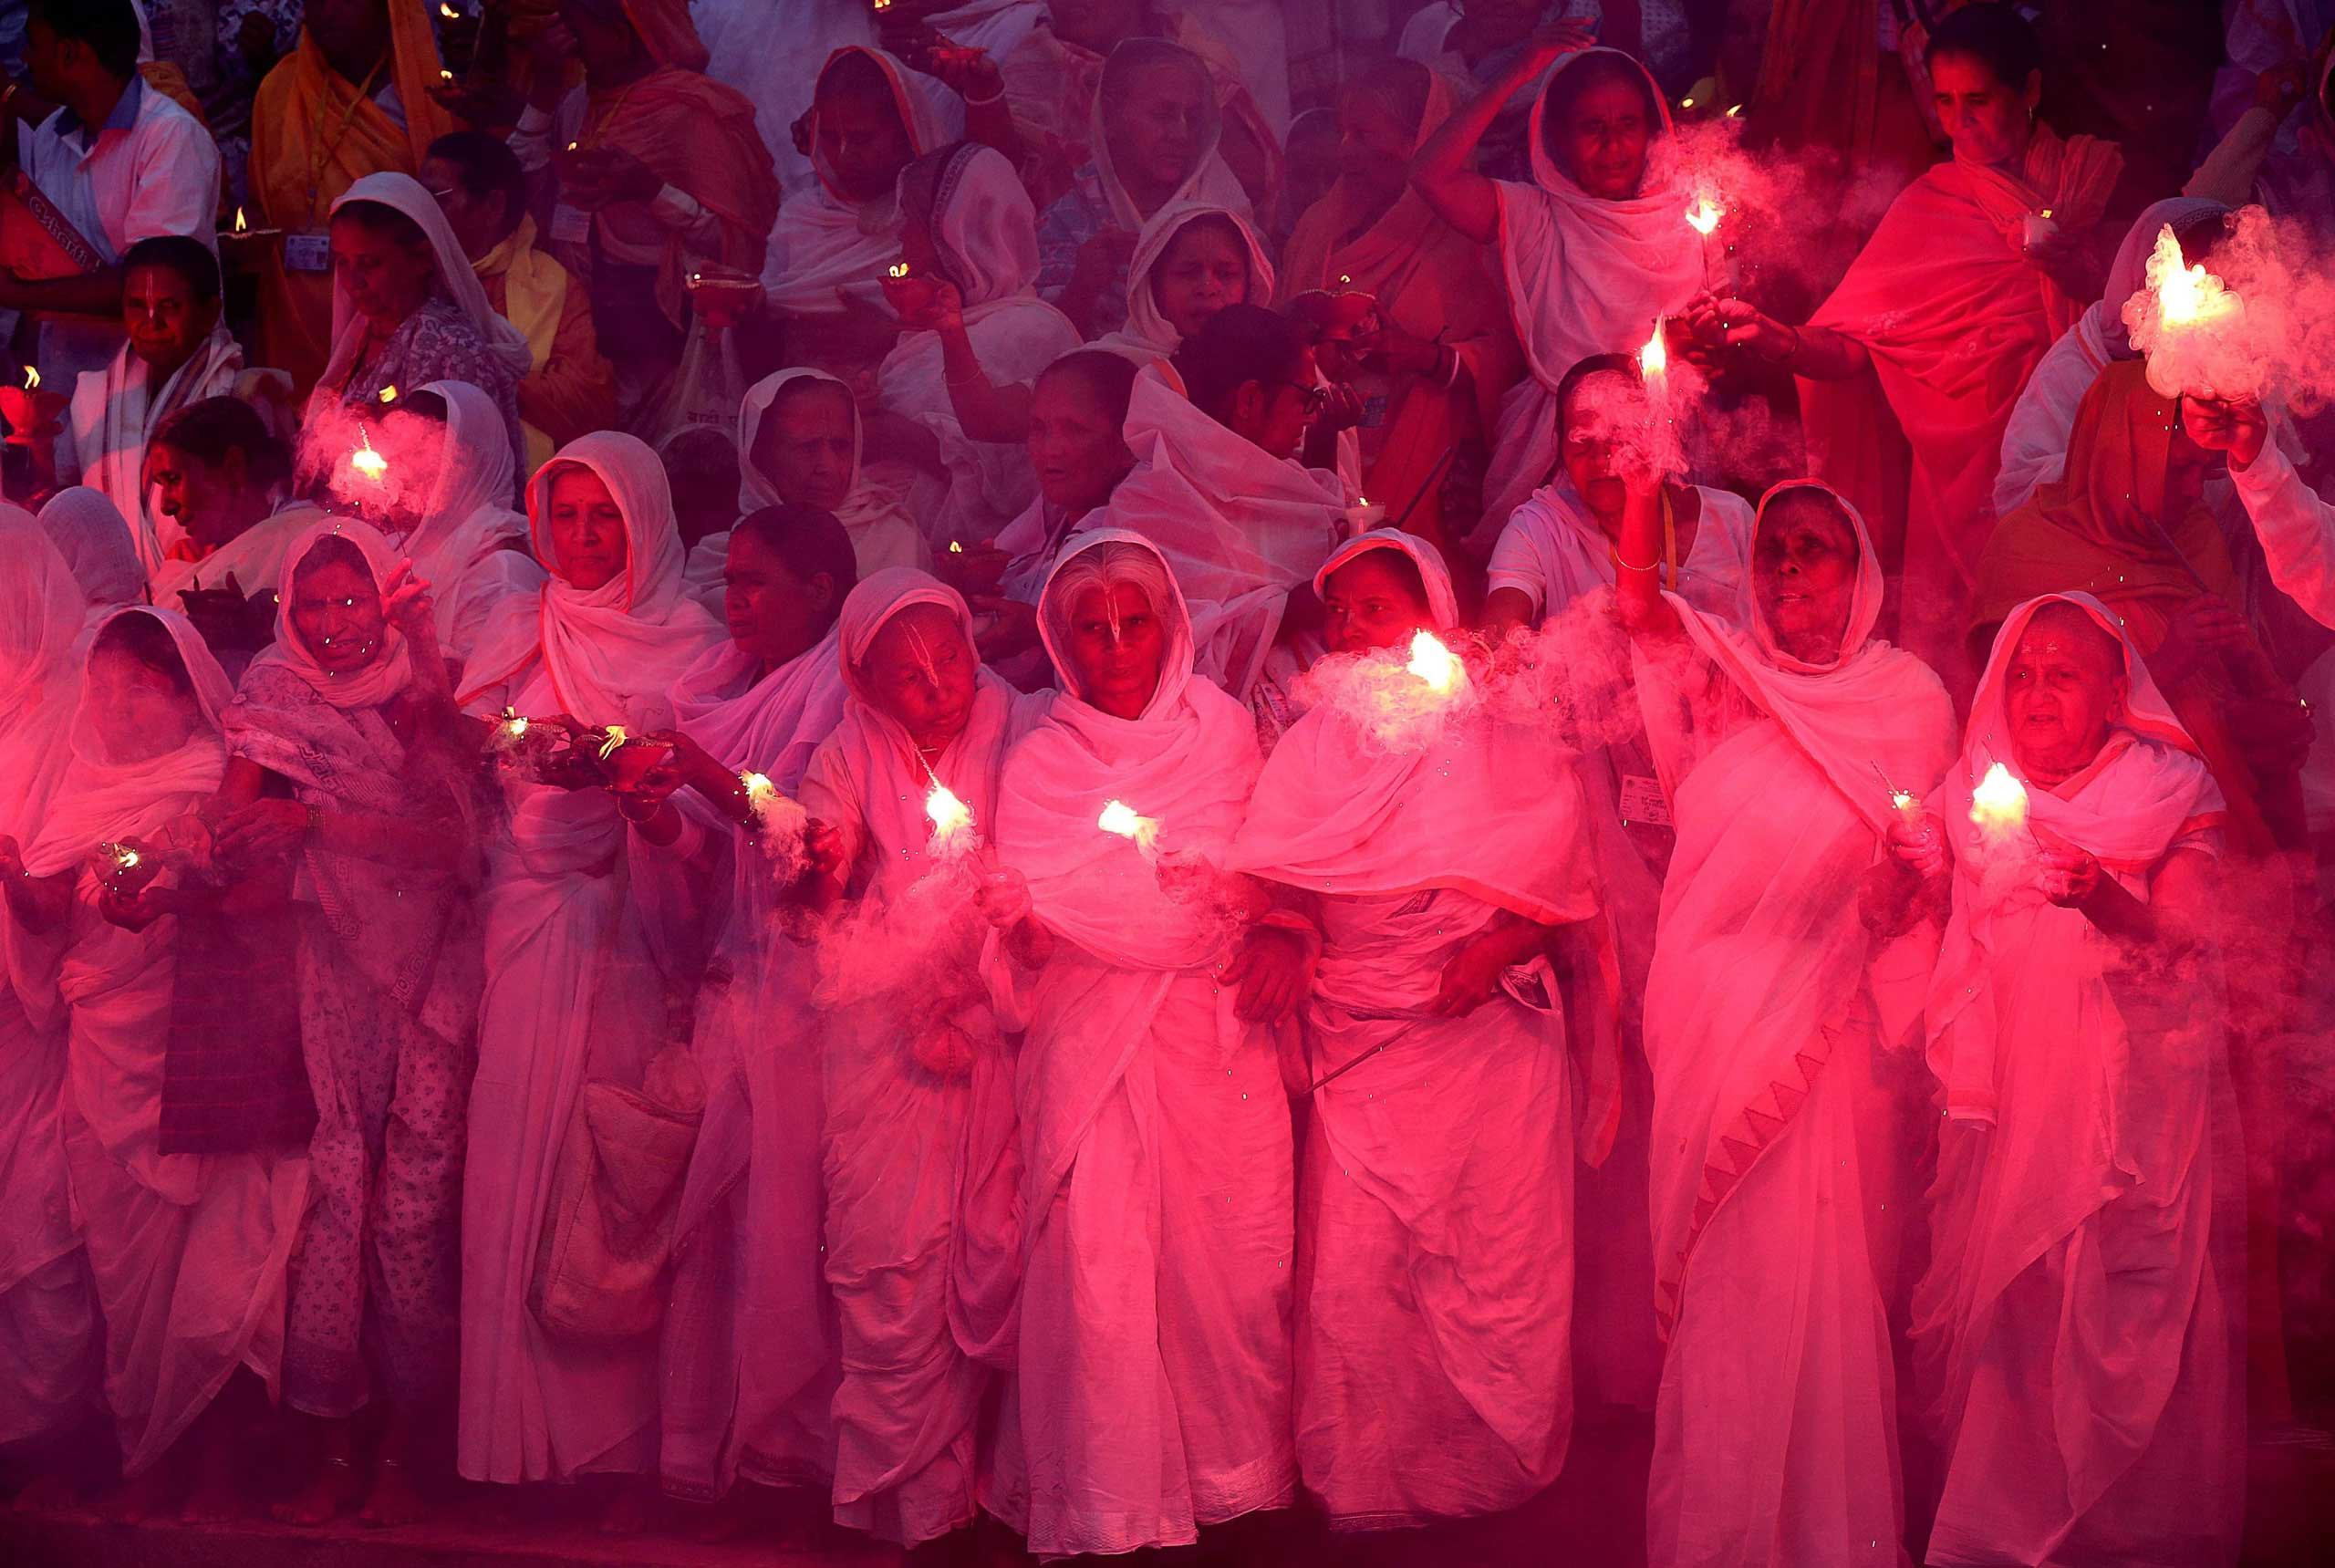 Indian widows burn fire crackers as they participate in an event to mark Diwali in Vrindavan, 100 miles  from New Delhi, on Nov. 10,  2015.